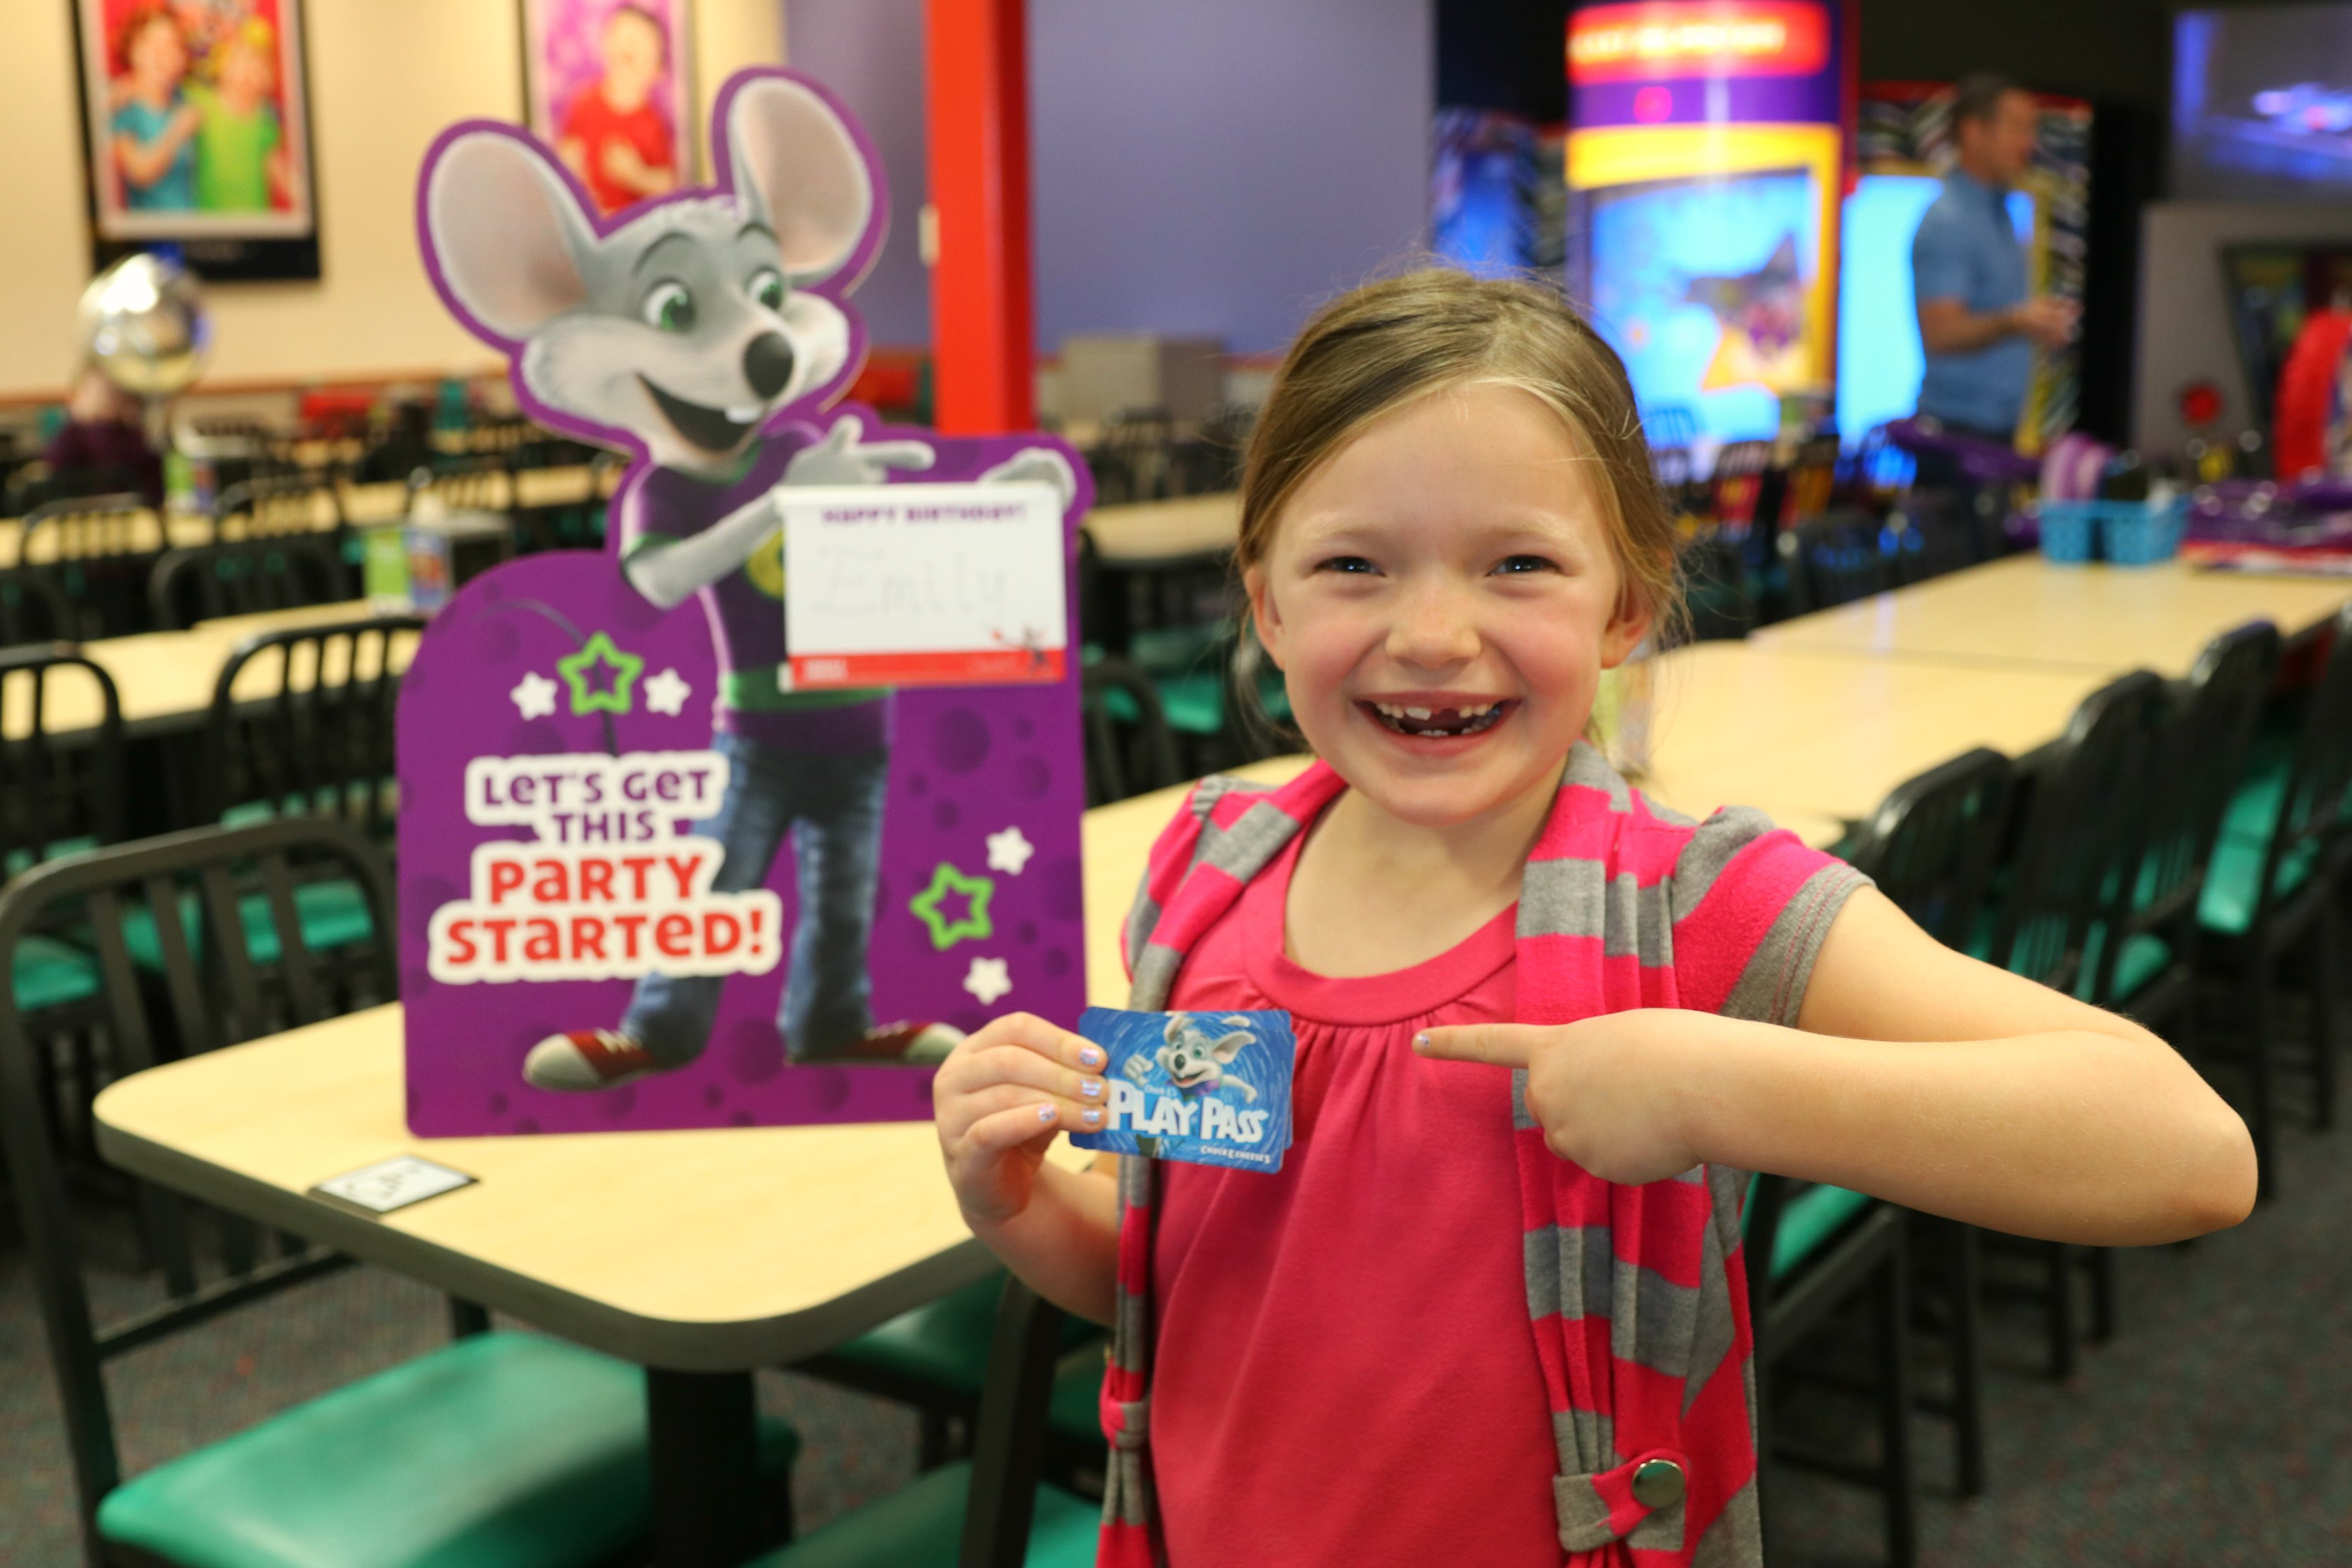 Kids will have a great time working towards success while earning Chuck E. Cheese rewards along the way. Simply track progress on these printable incentive charts by marking the days off with a pen or sticker as your kids accomplish their goals, then bring in a completed calendar or behavior chart to Chuck E. Cheese's and receive 10 free play points or tokens as a reward.